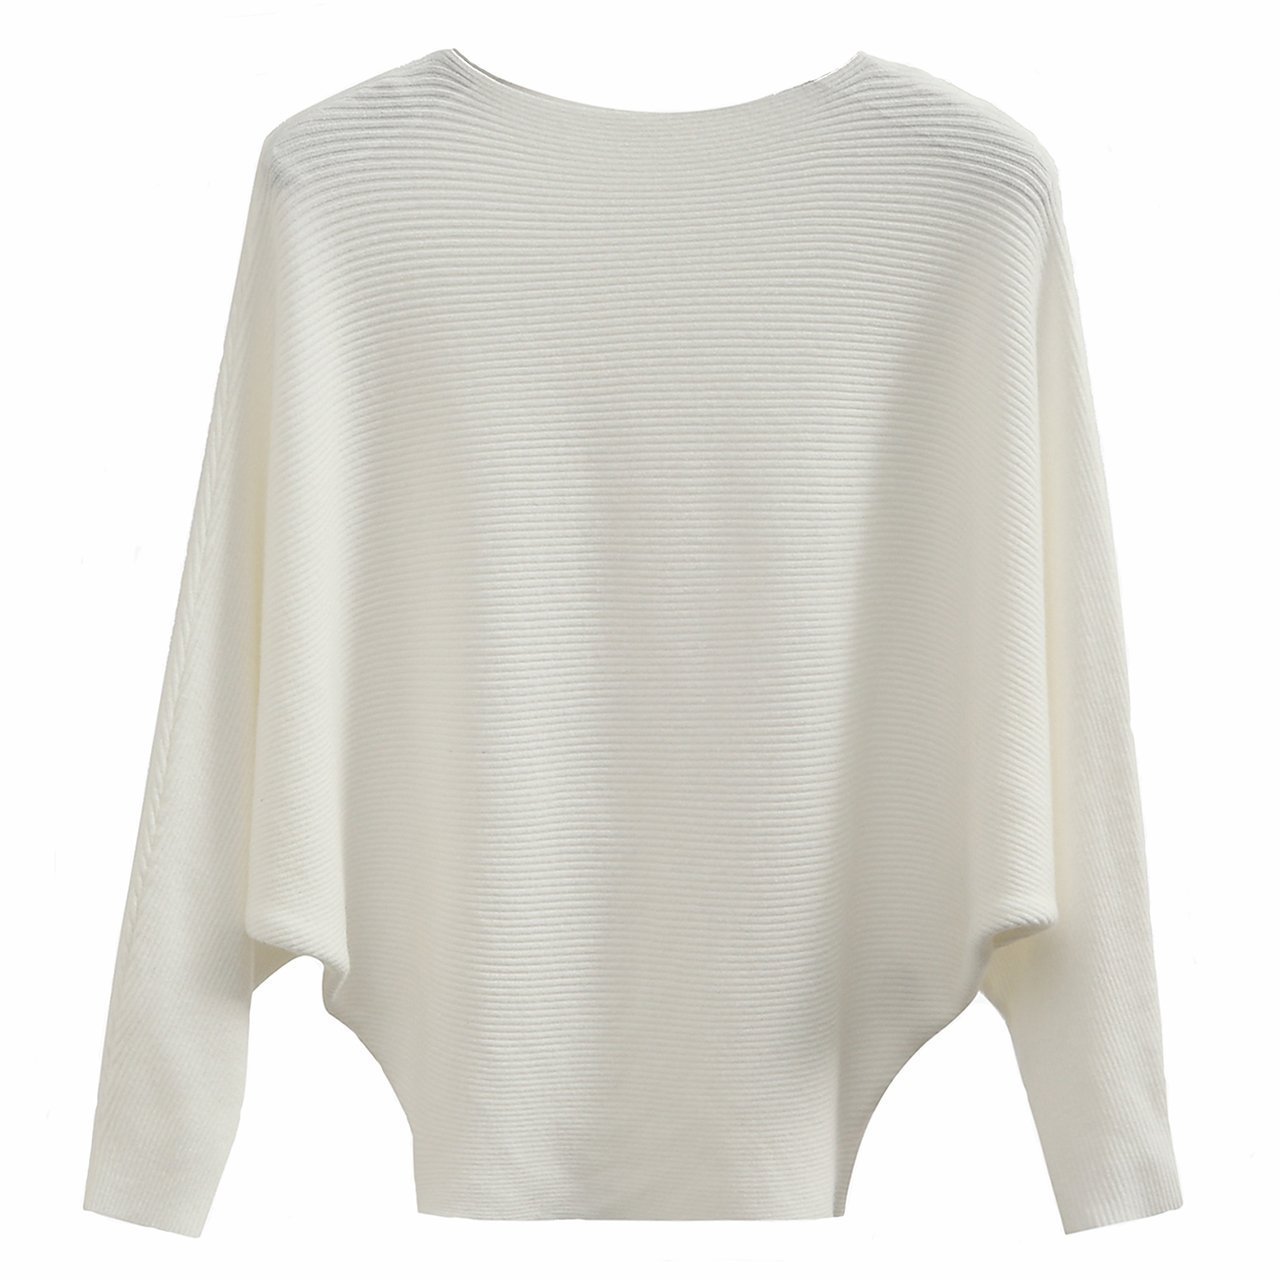 GABERLY Boat Neck Batwing Sleeves Dolman Knitted Sweaters and Pullovers Tops for Women (White, One Size) by GABERLY